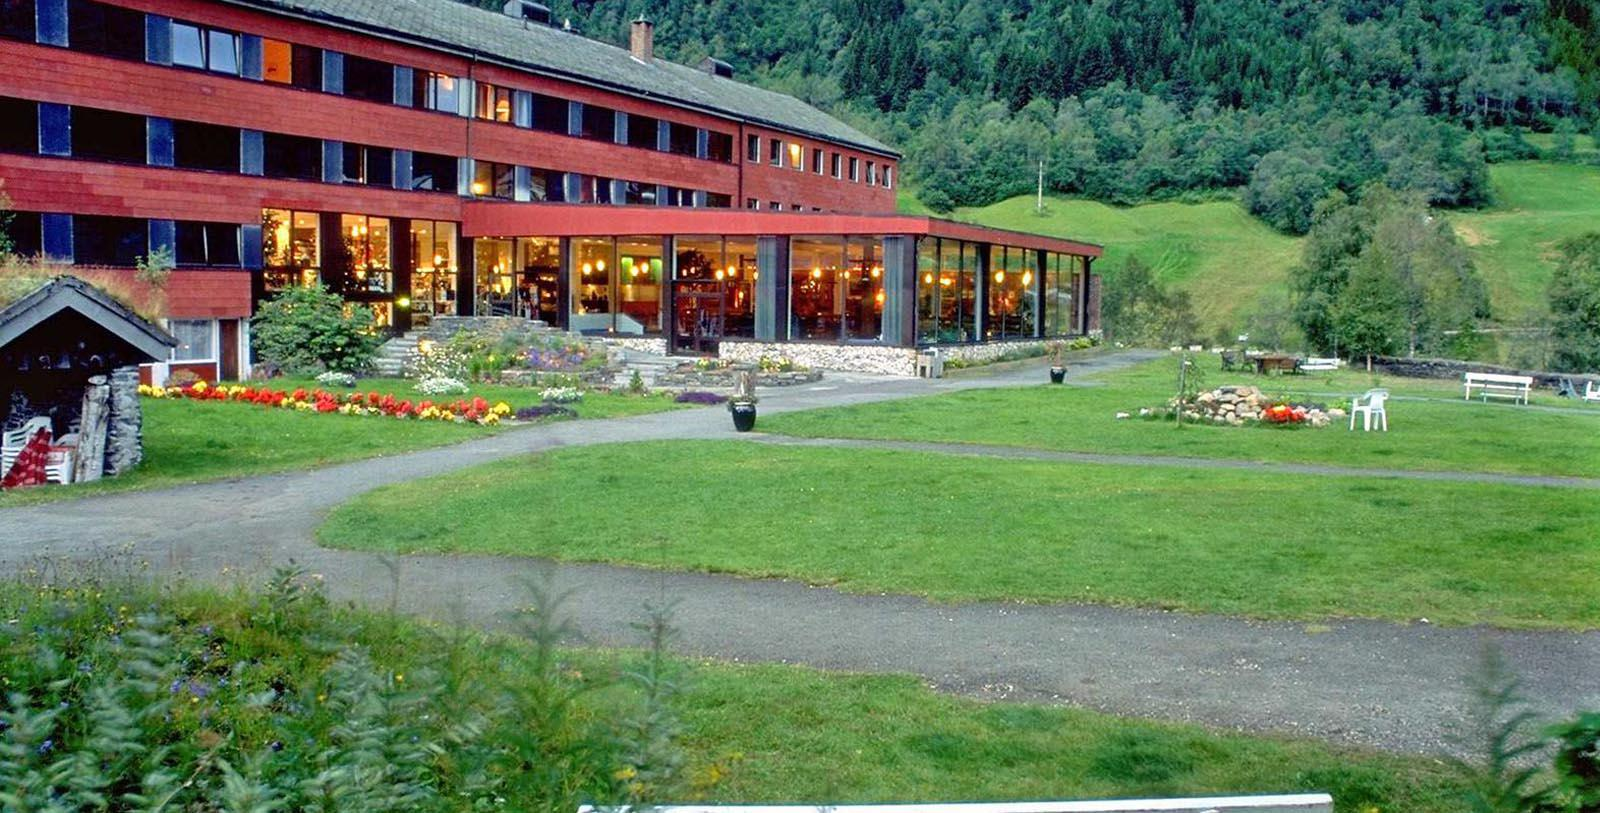 Image of Hotel Exterior Stalheim Hotel, 1750, Member of Historic Hotels Worldwide, in Stalheim, Norway, Special Offers, Discounted Rates, Families, Romantic Escape, Honeymoons, Anniversaries, Reunions